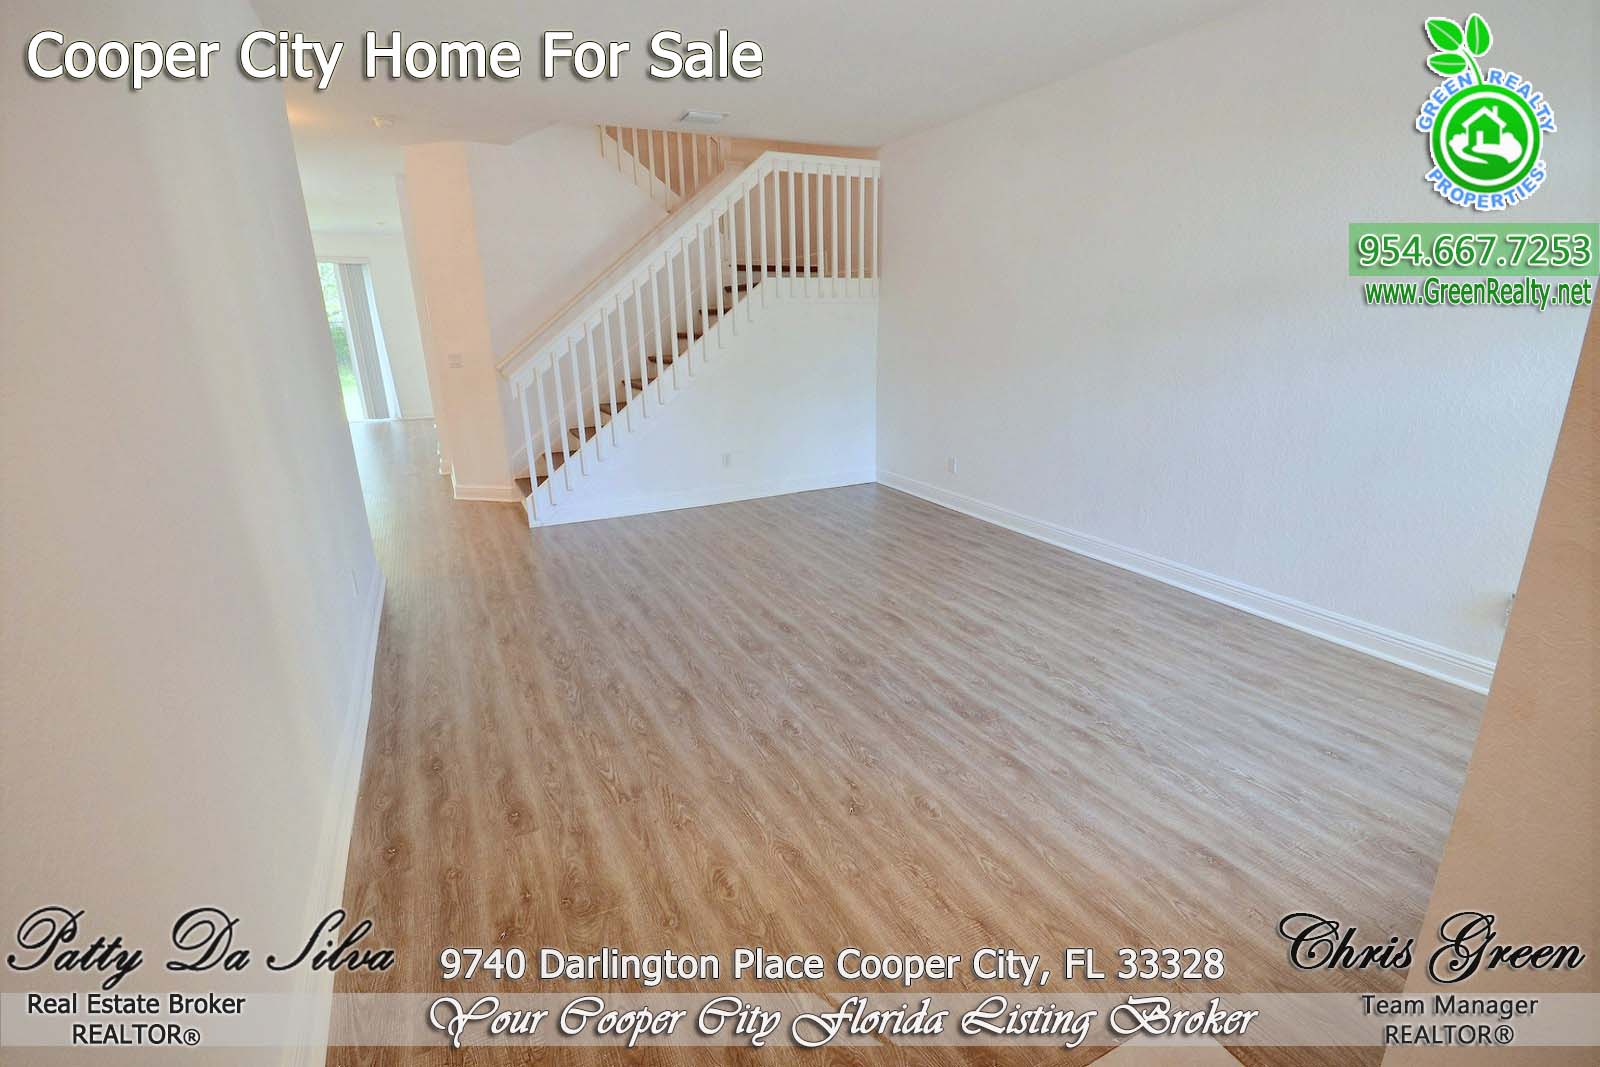 4 Homes For Sale in Darlington Park Cooper City (2)